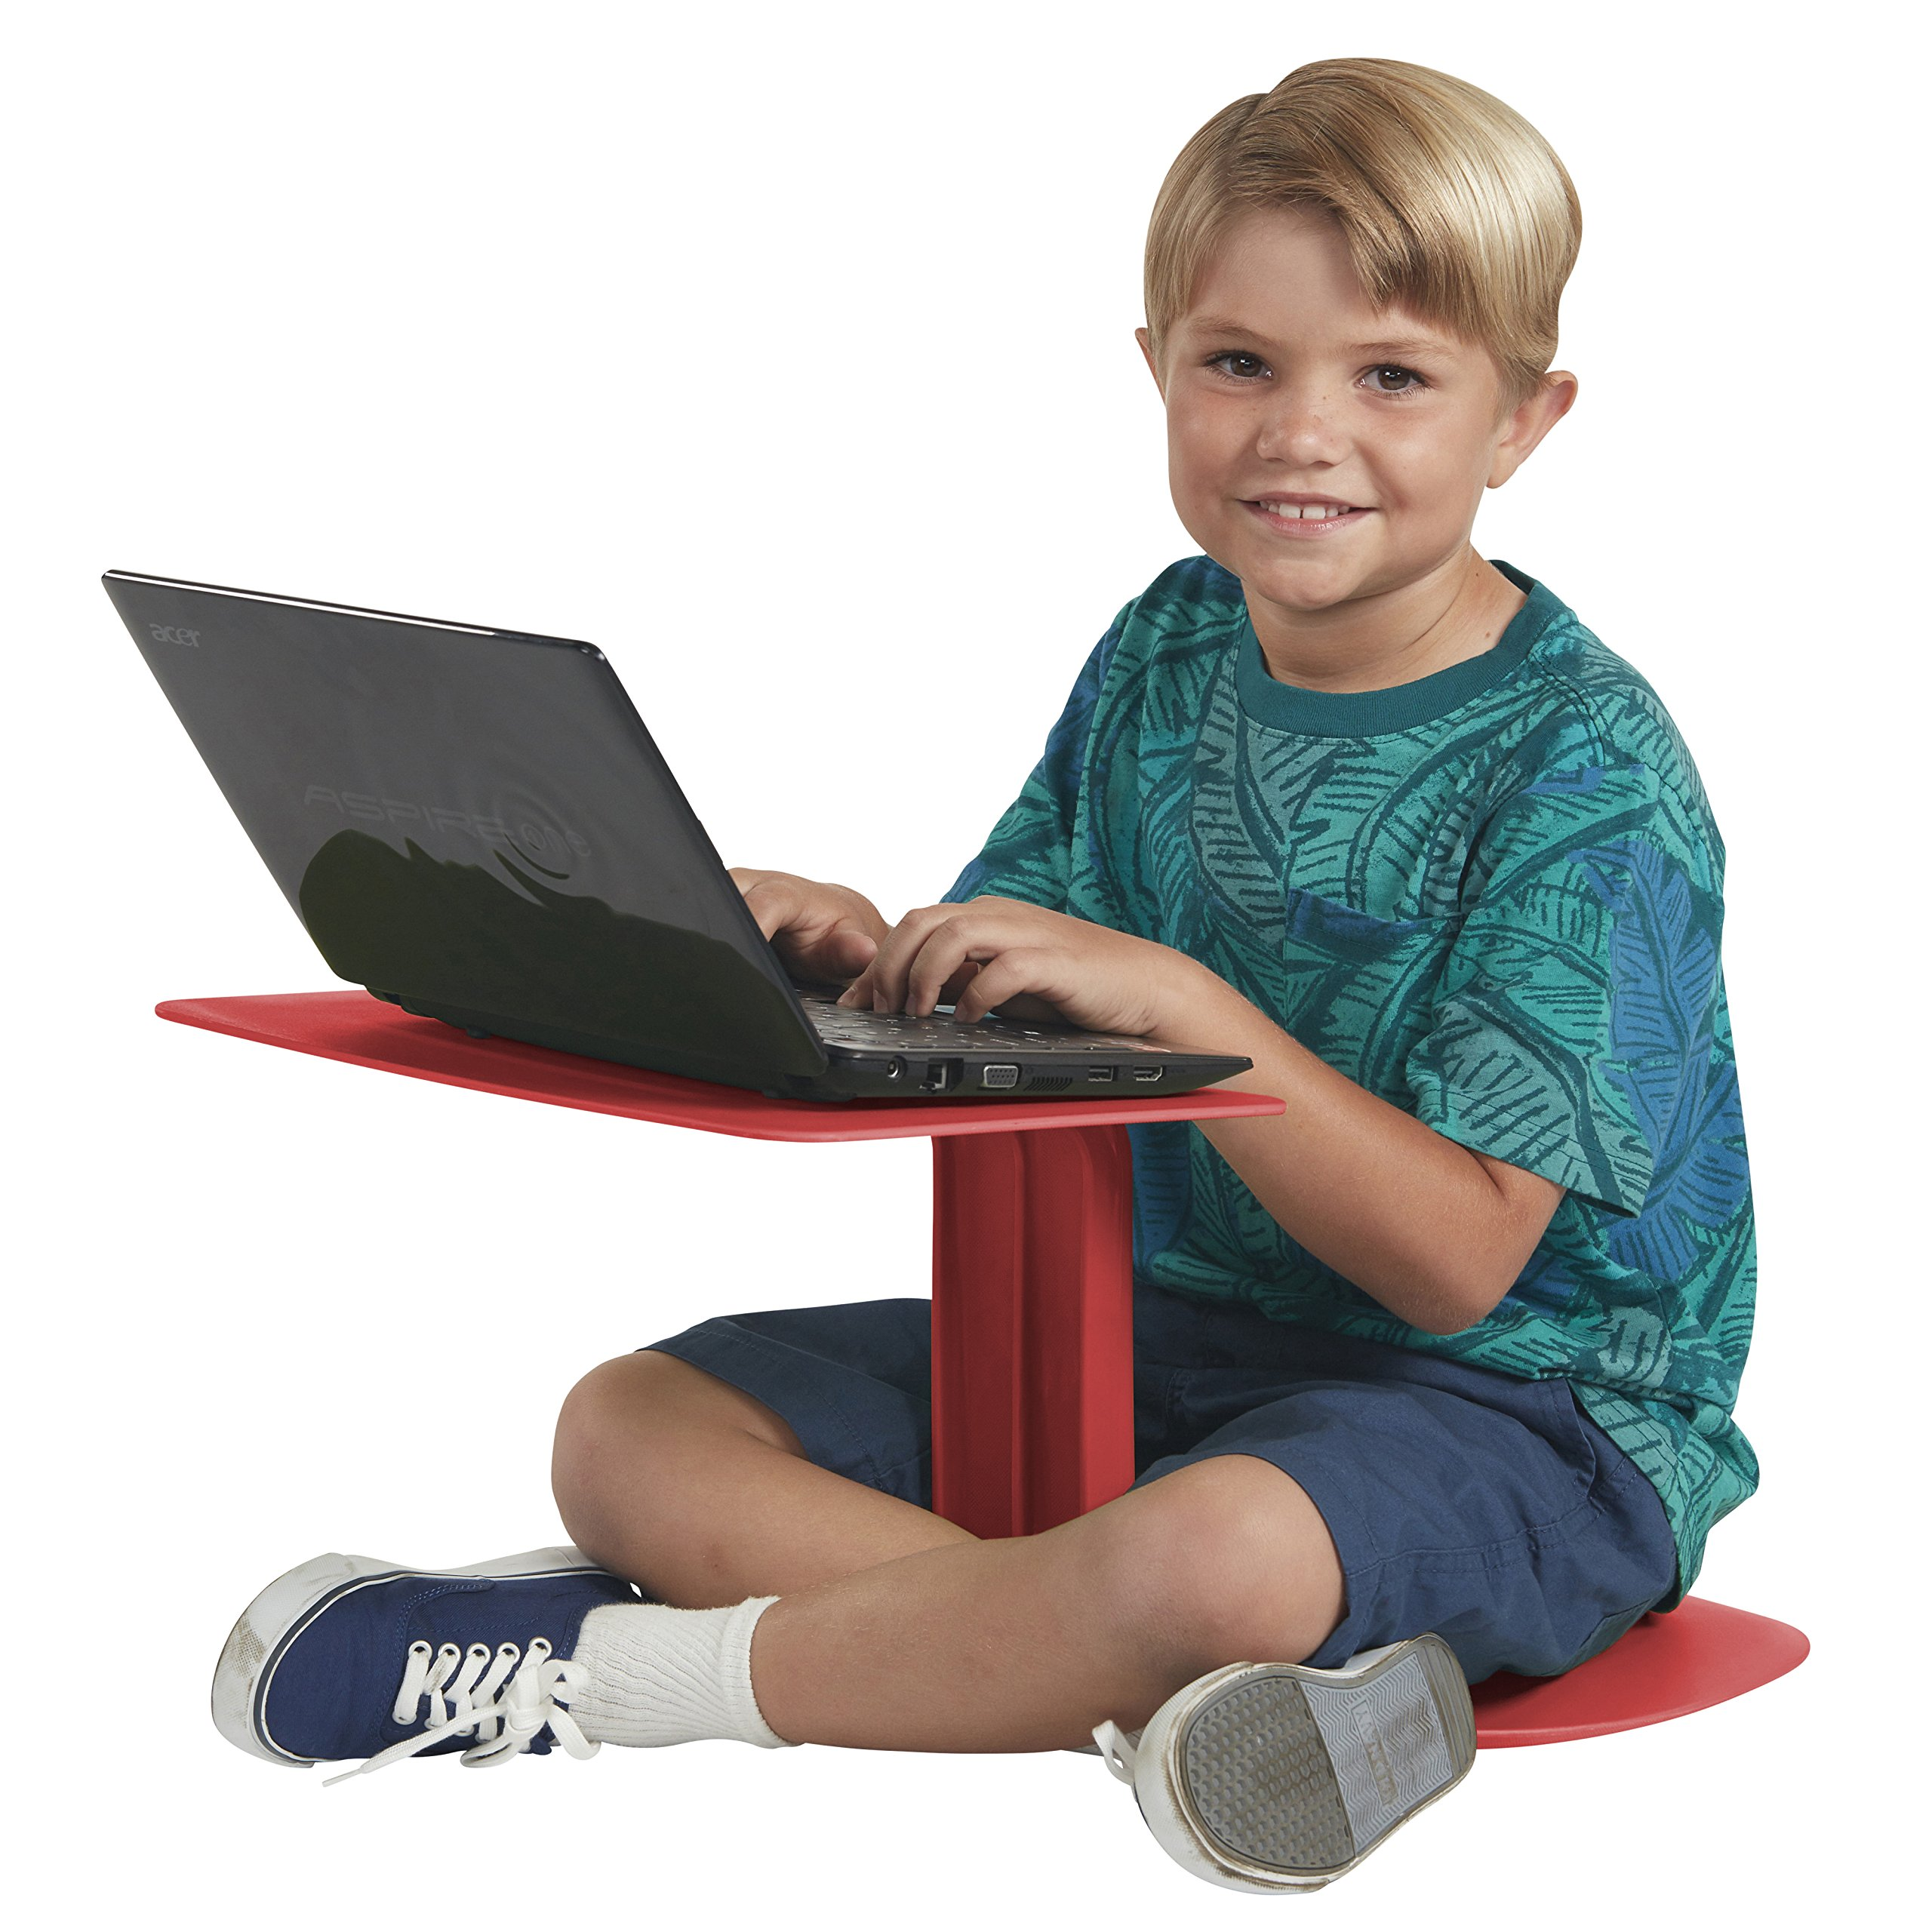 ECR4Kids The Surf Portable Lap Desk/Laptop Stand/Writing Table, Red by ECR4Kids